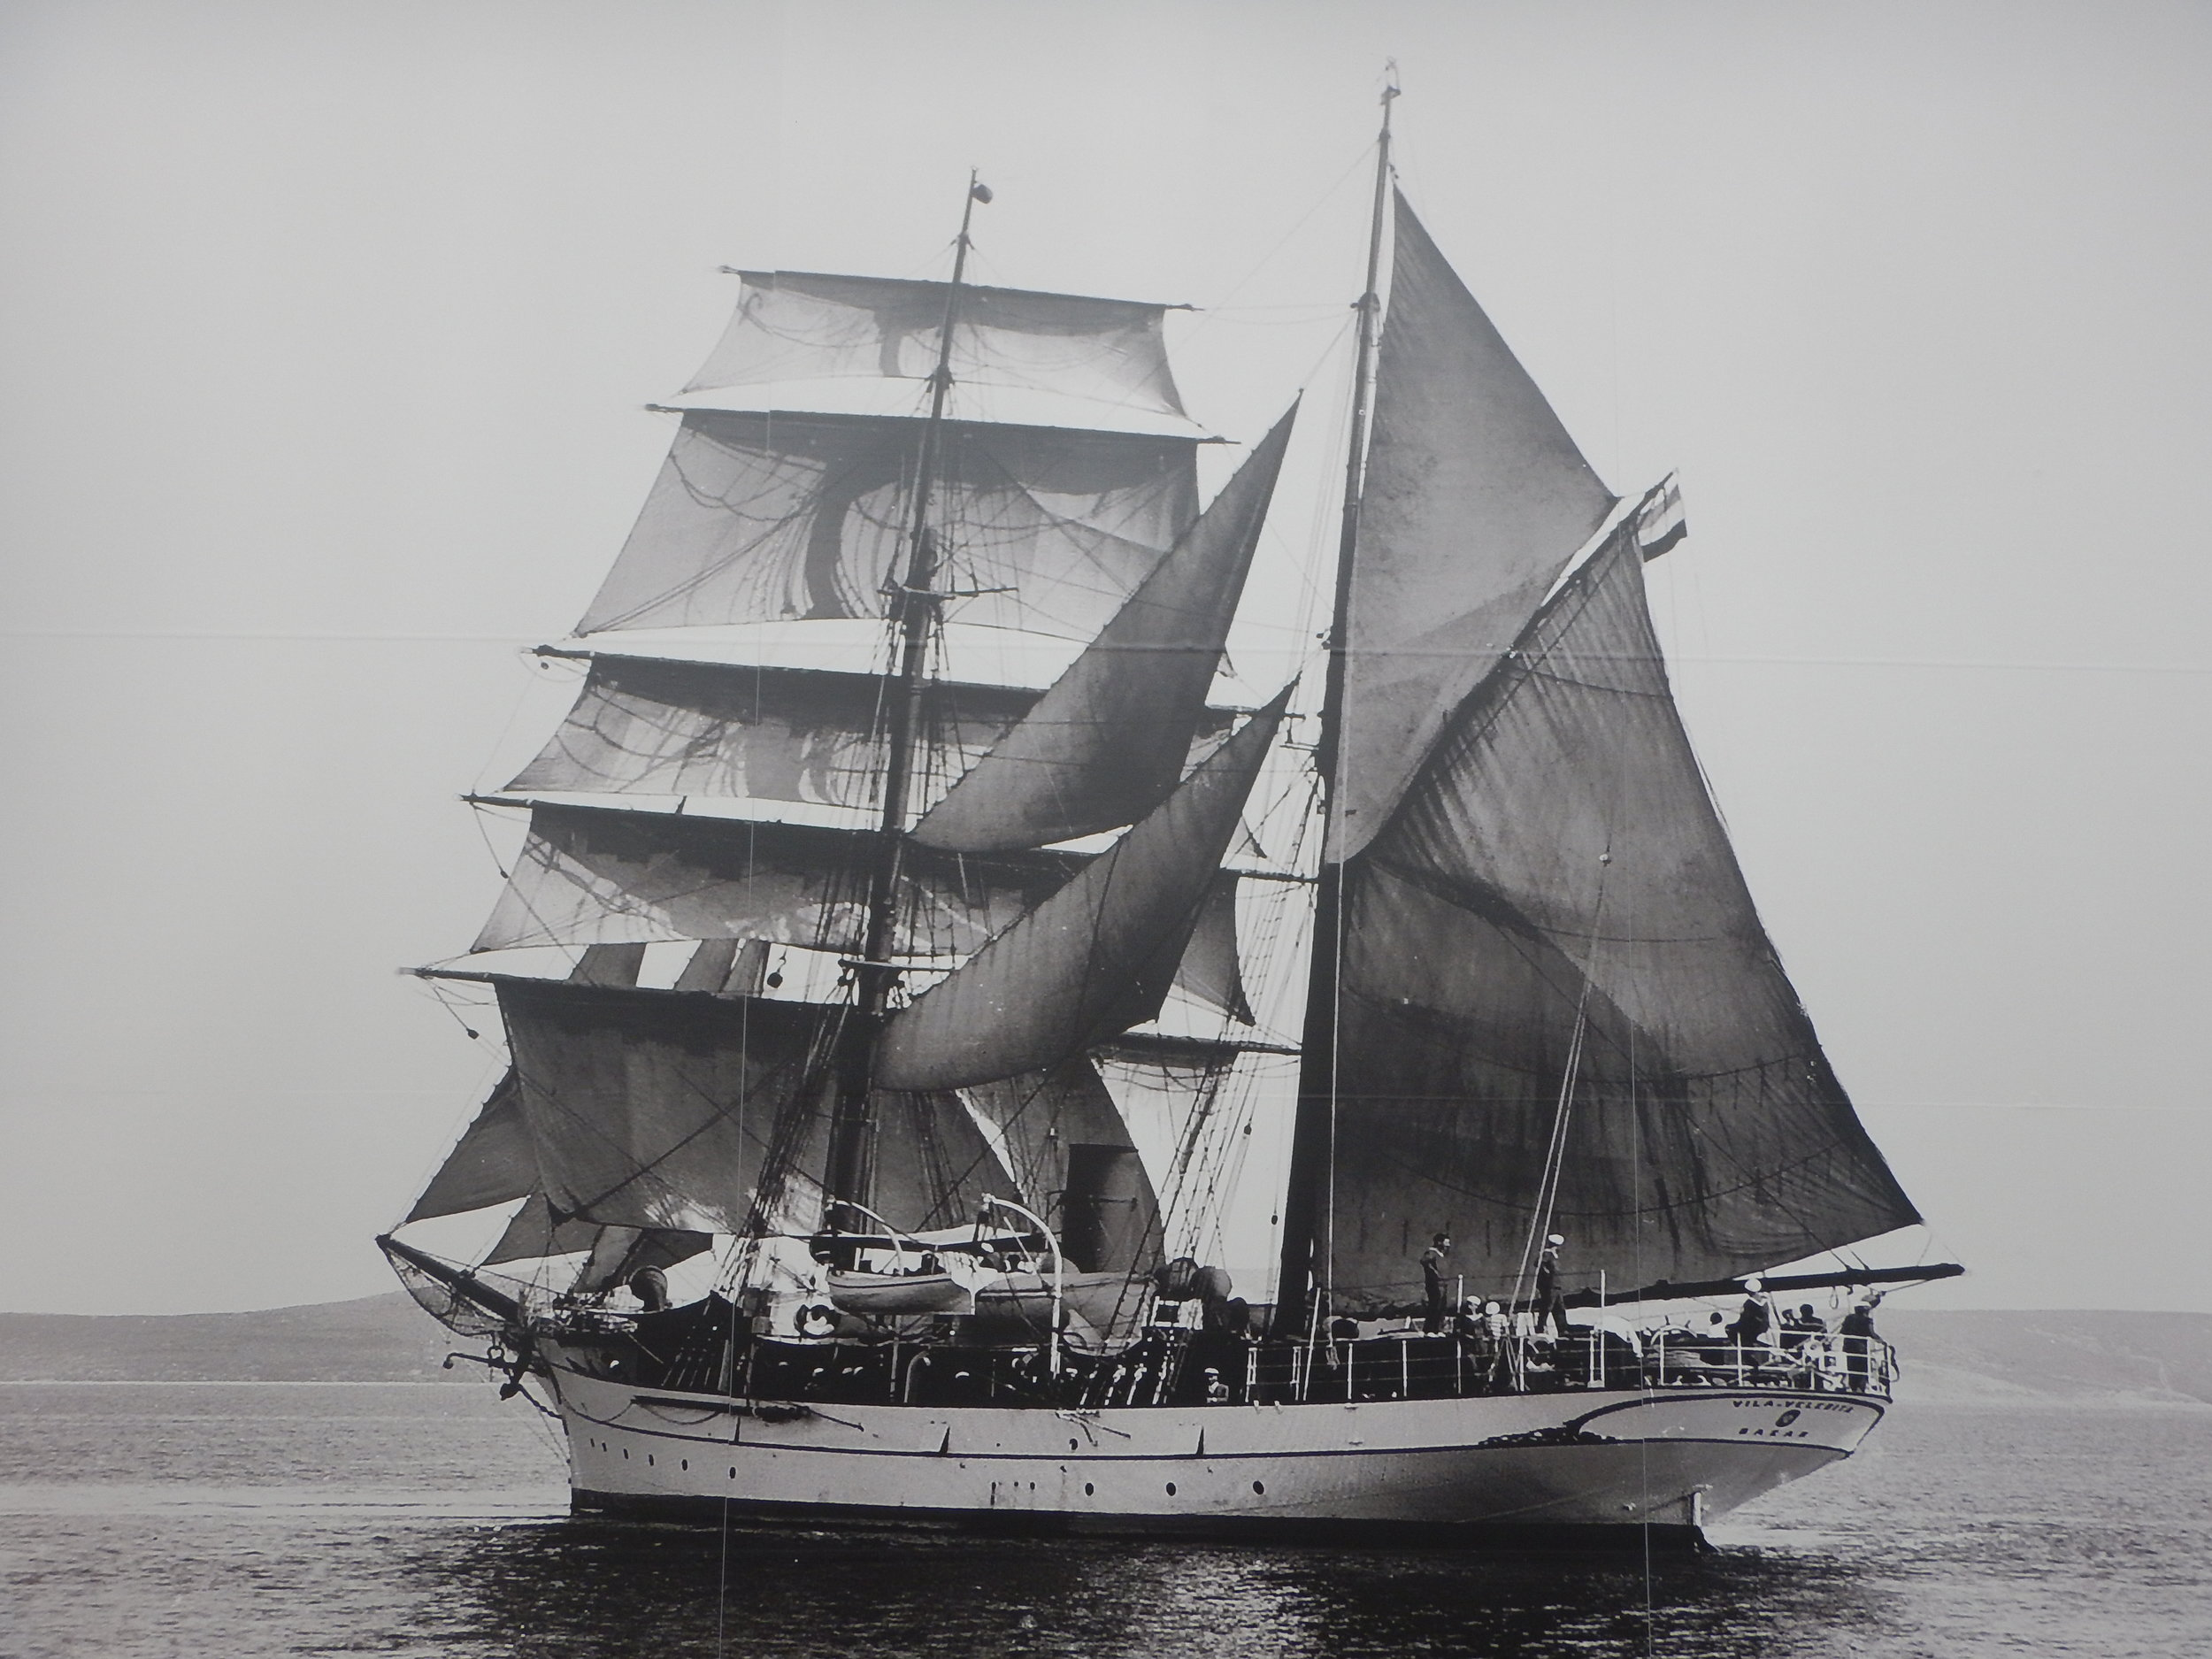 Sailing ship from the early 1900's, just like the two ships the Unkovic brothers bought when they returned from two years working in the forests in Australia.